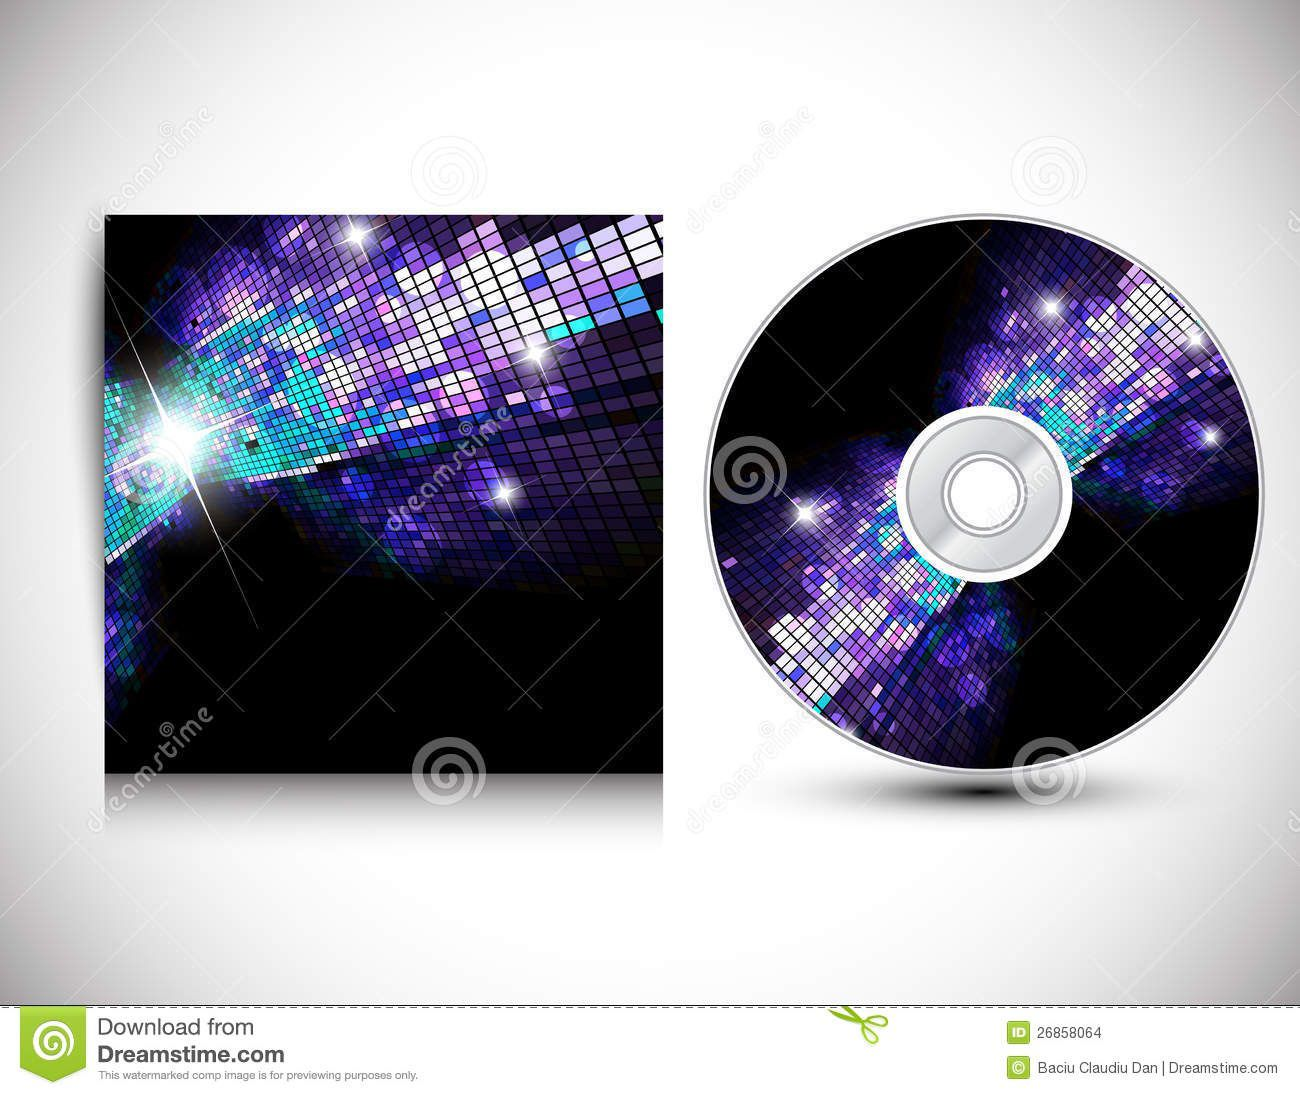 002 Formidable Cd Cover Design Template  Free Vector Illustration Word Psd DownloadFull